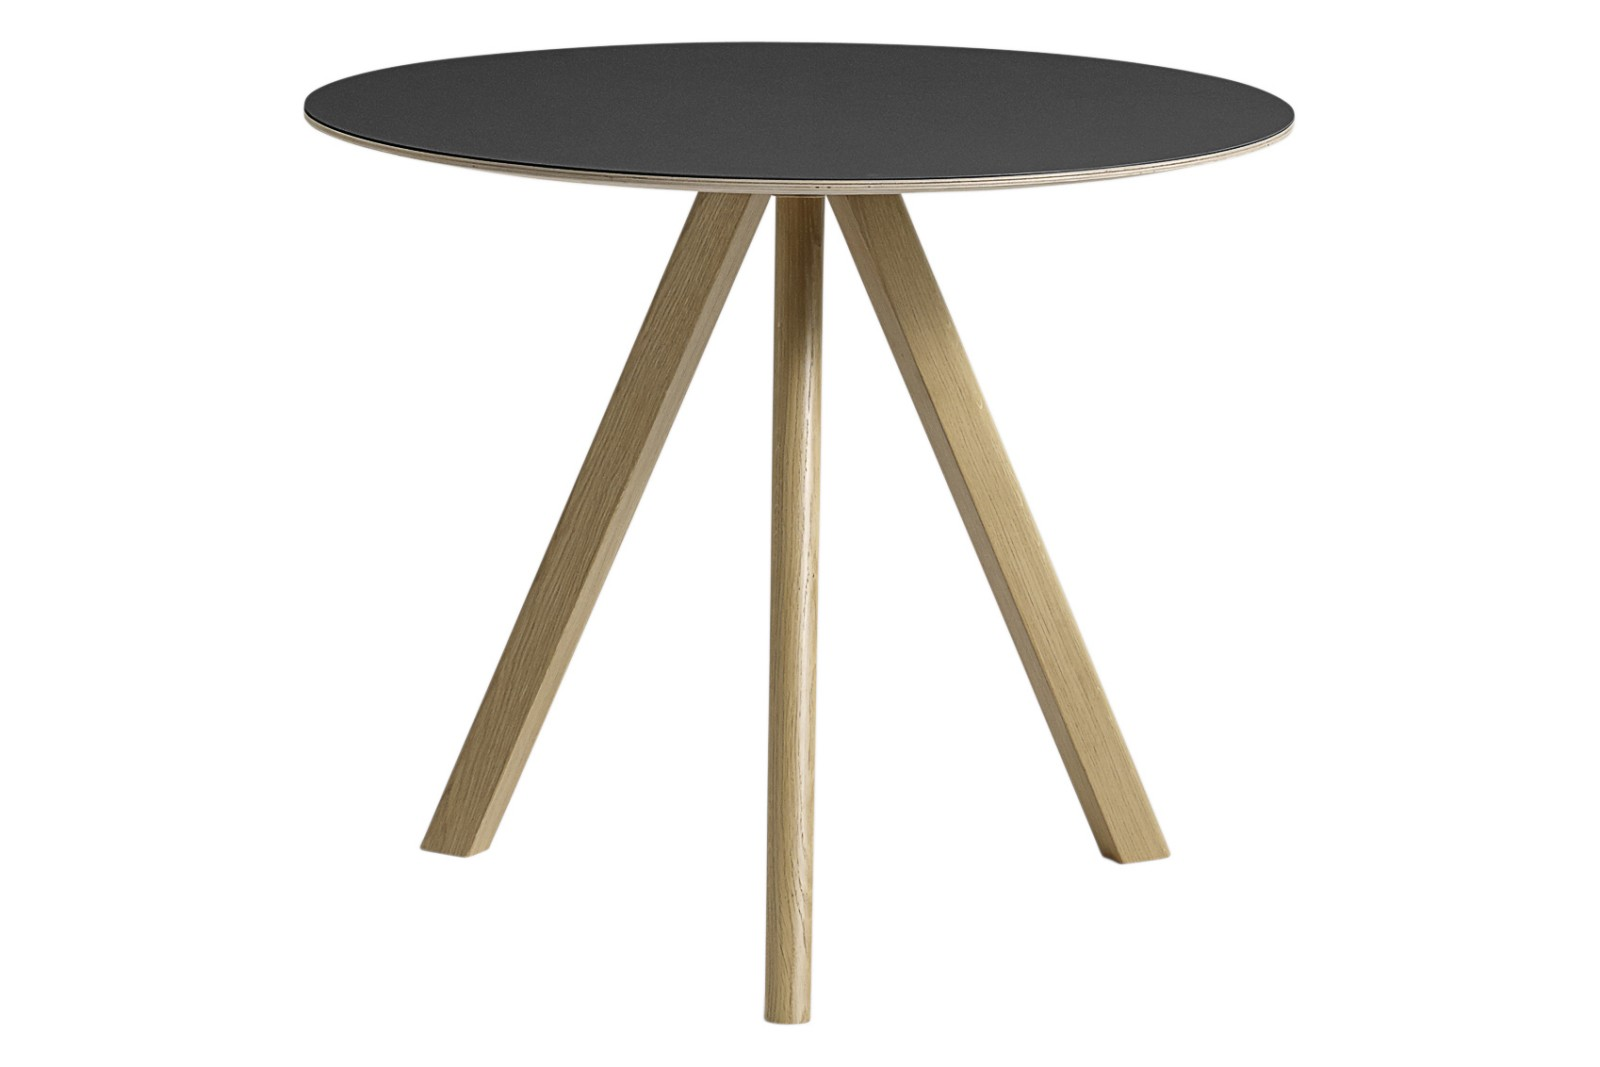 Copenhague Linoleum Top Round Dining Table CPH20 Clear Lacquered Oak Base, Black Top, Small